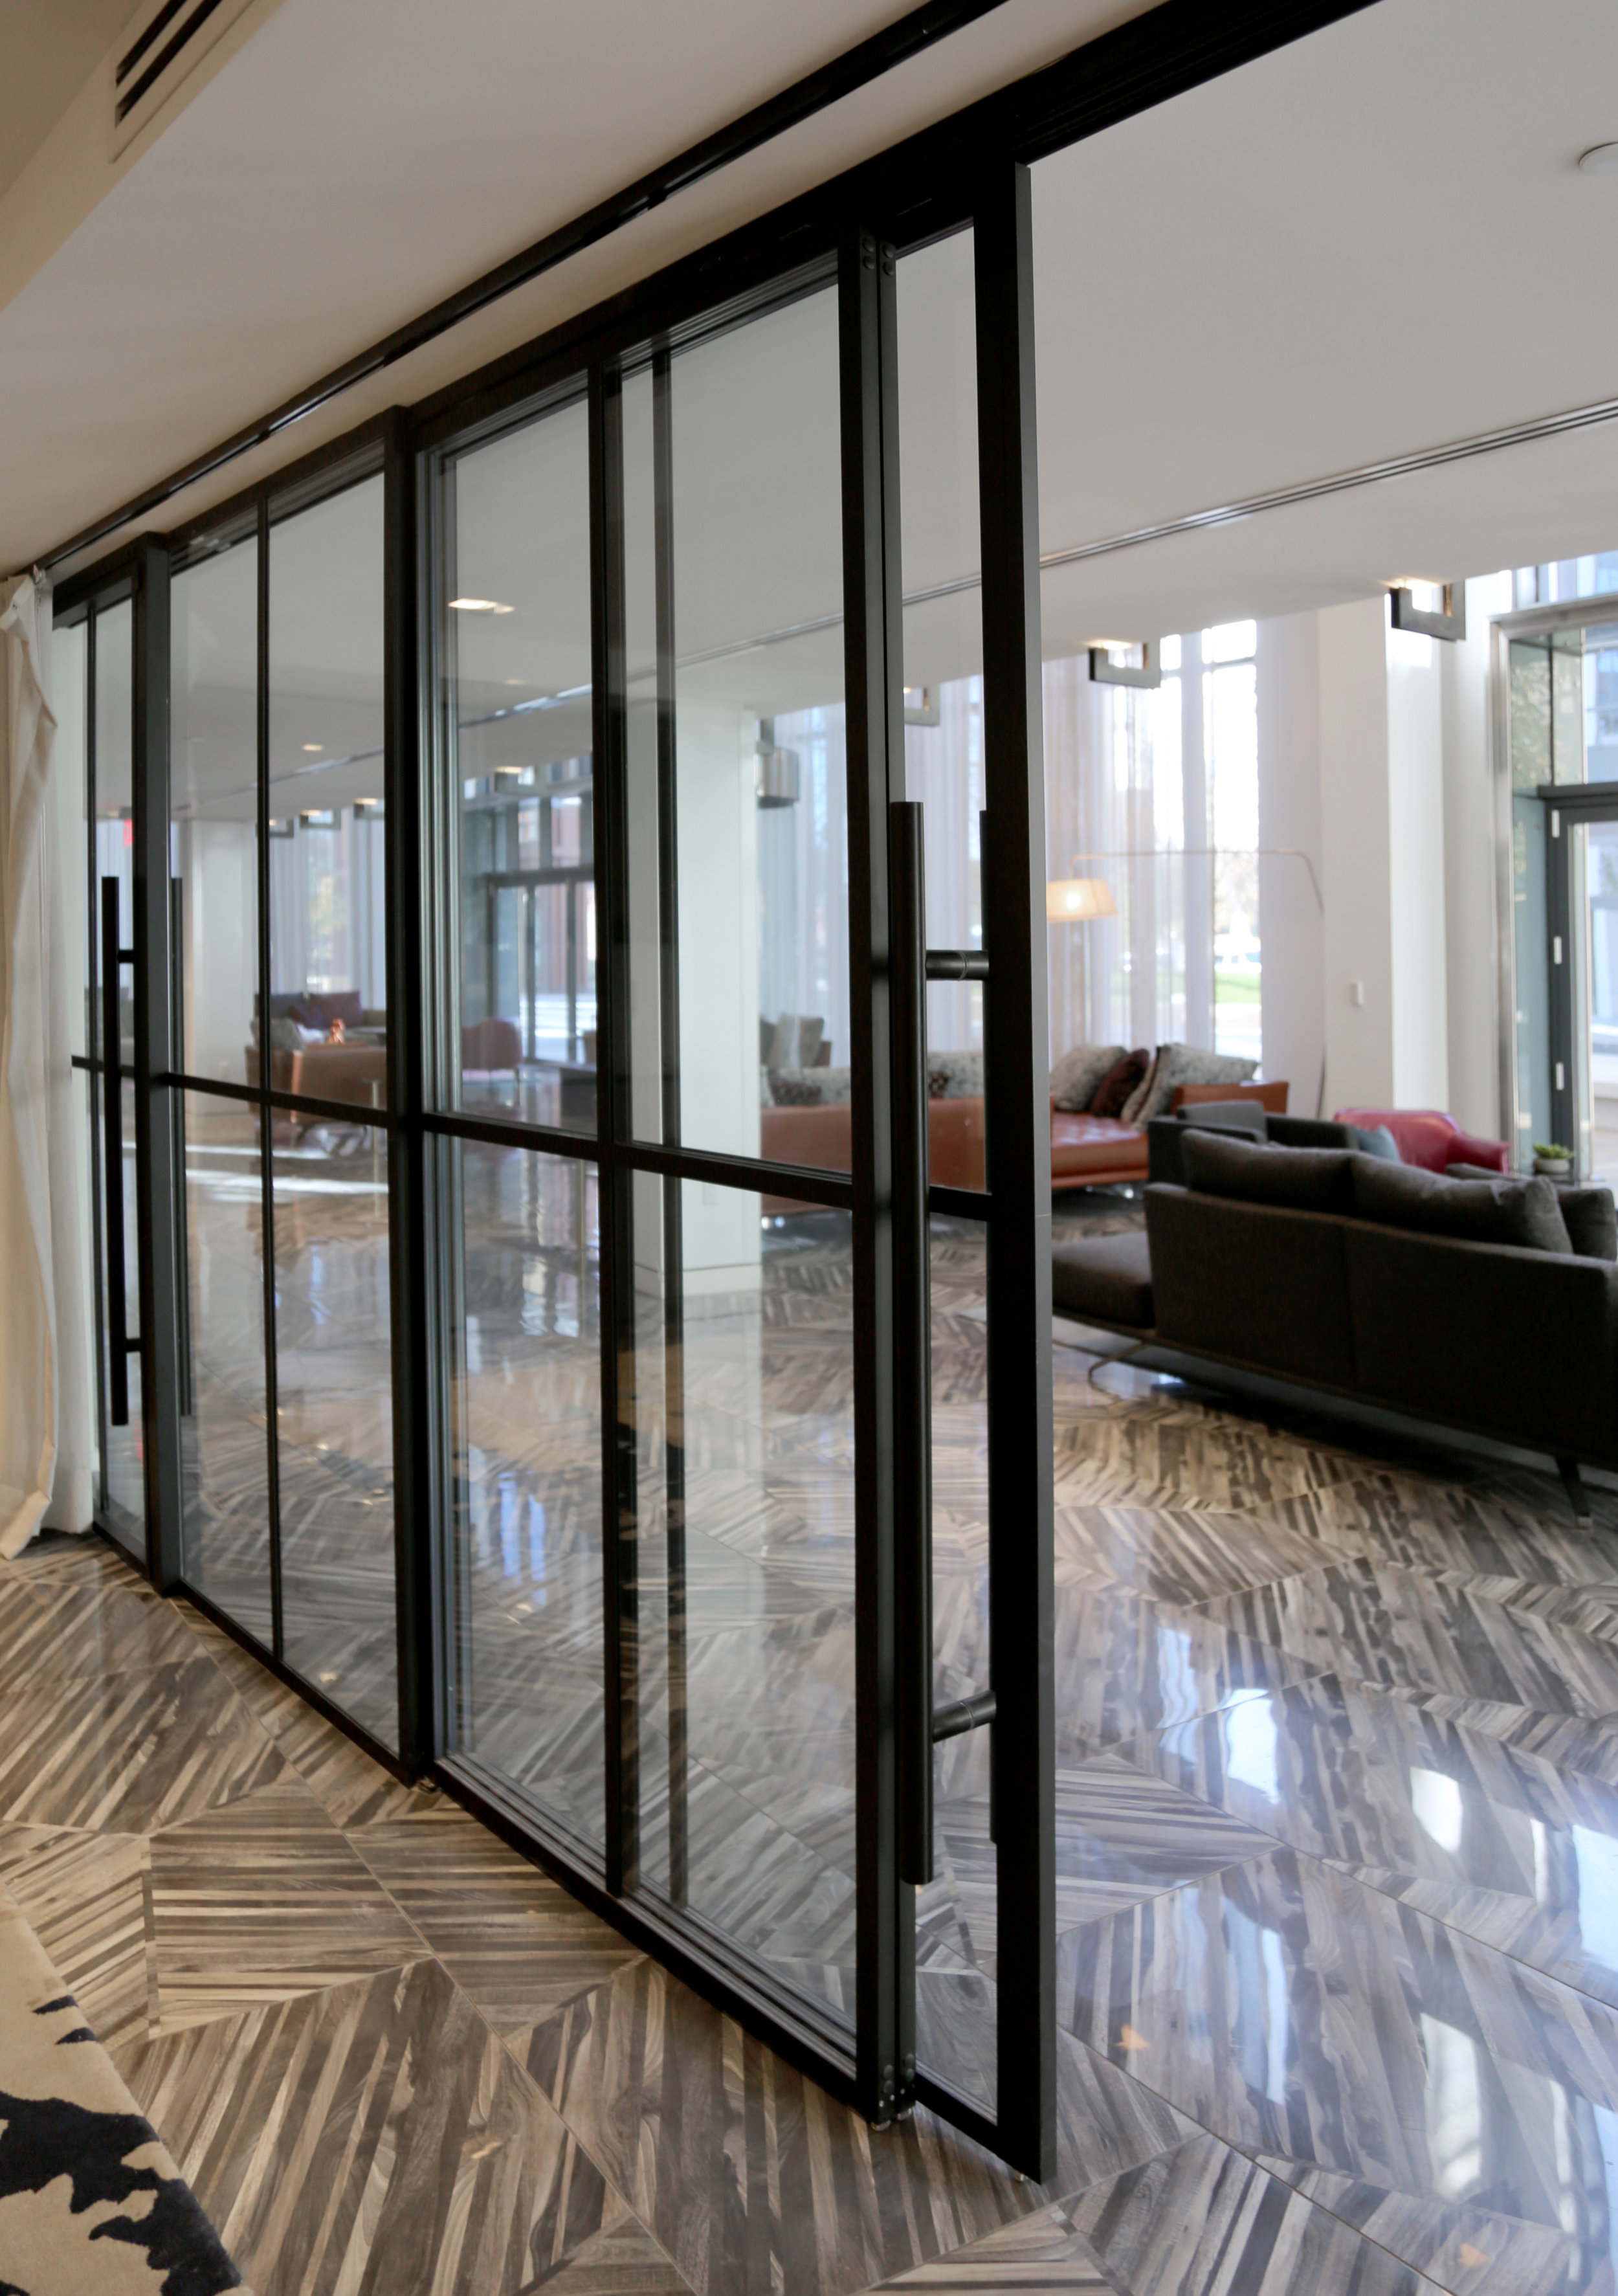 Modernus Black Anodized Sliding Wall Telescoping System Applied Mullions Sliding Door - Spaceworks AI.jpg